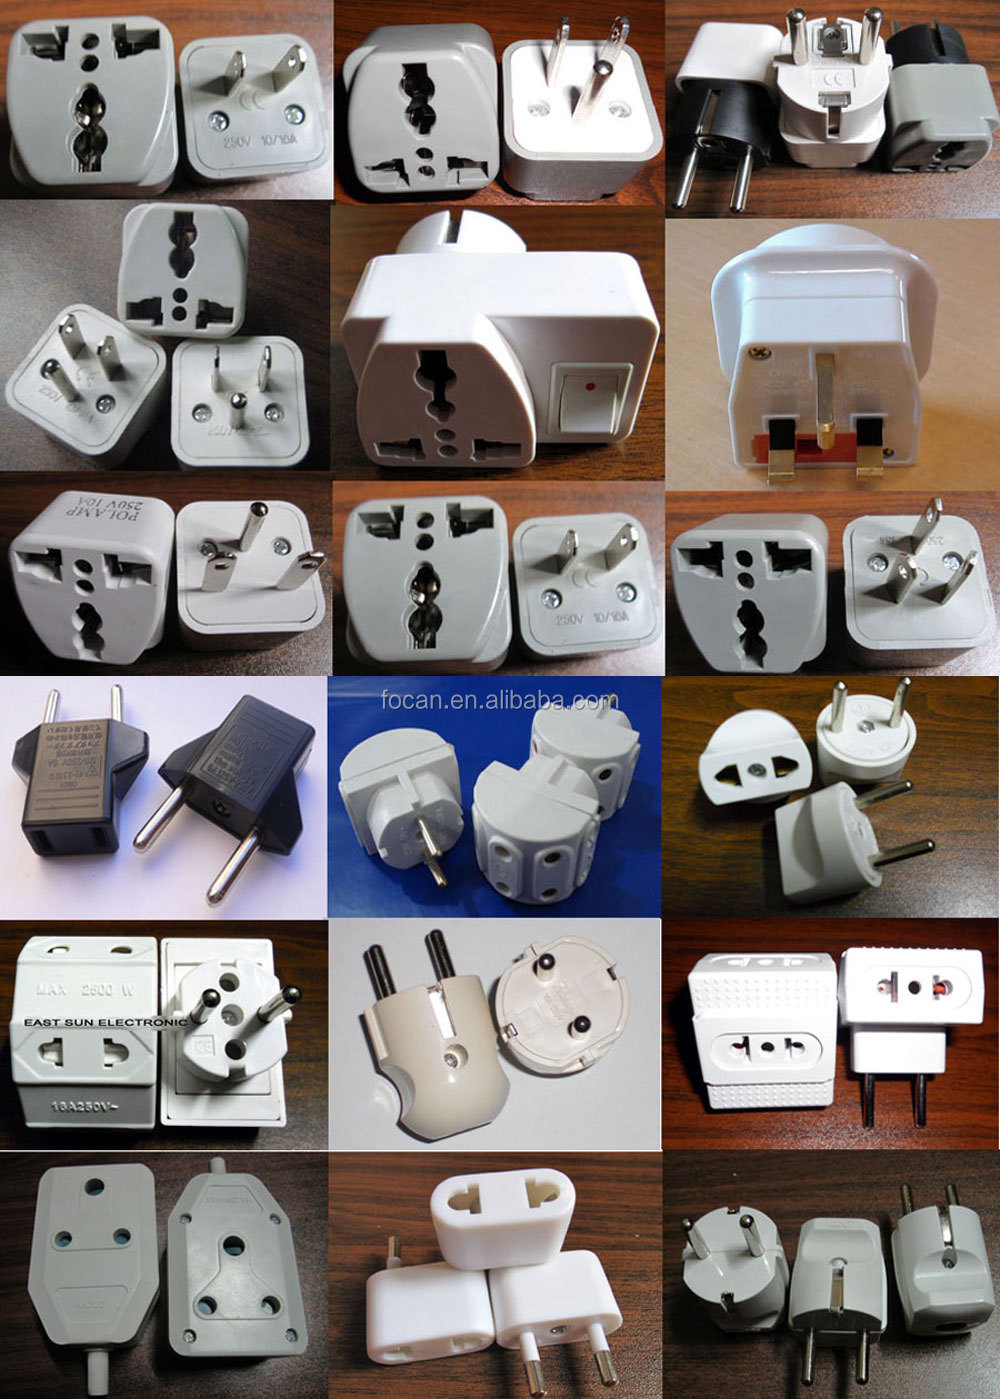 5V 2.1A  Universal to India south africa Travel Adapter plug with Dual USB ports